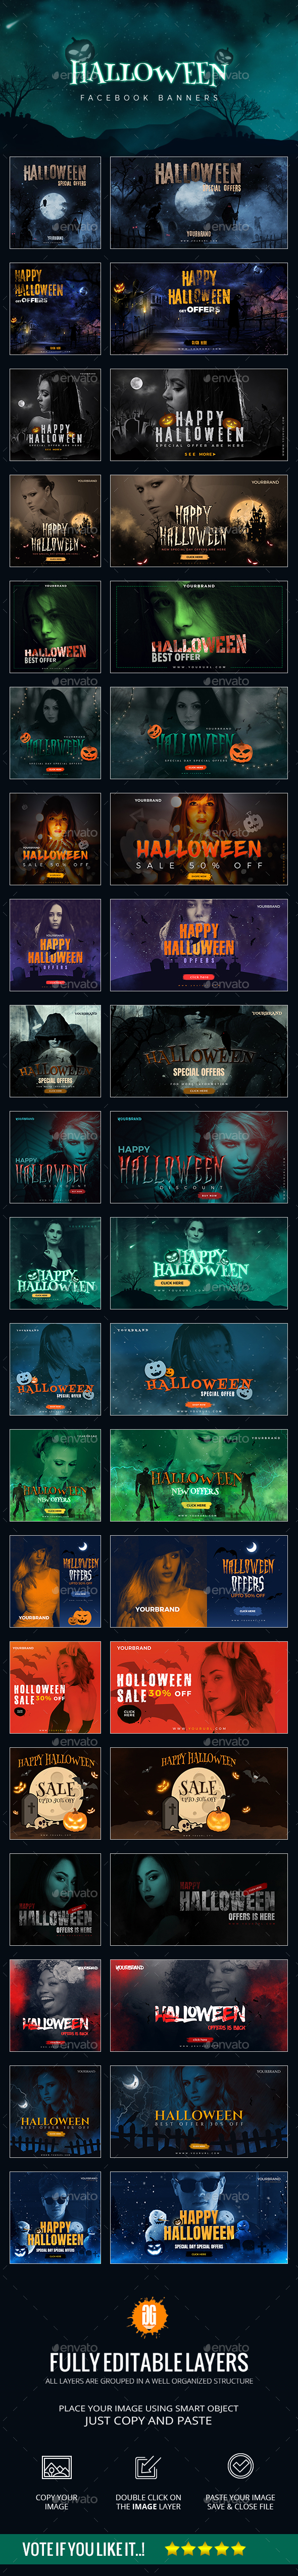 GraphicRiver 40 Halloween Facebook Banners 20673543